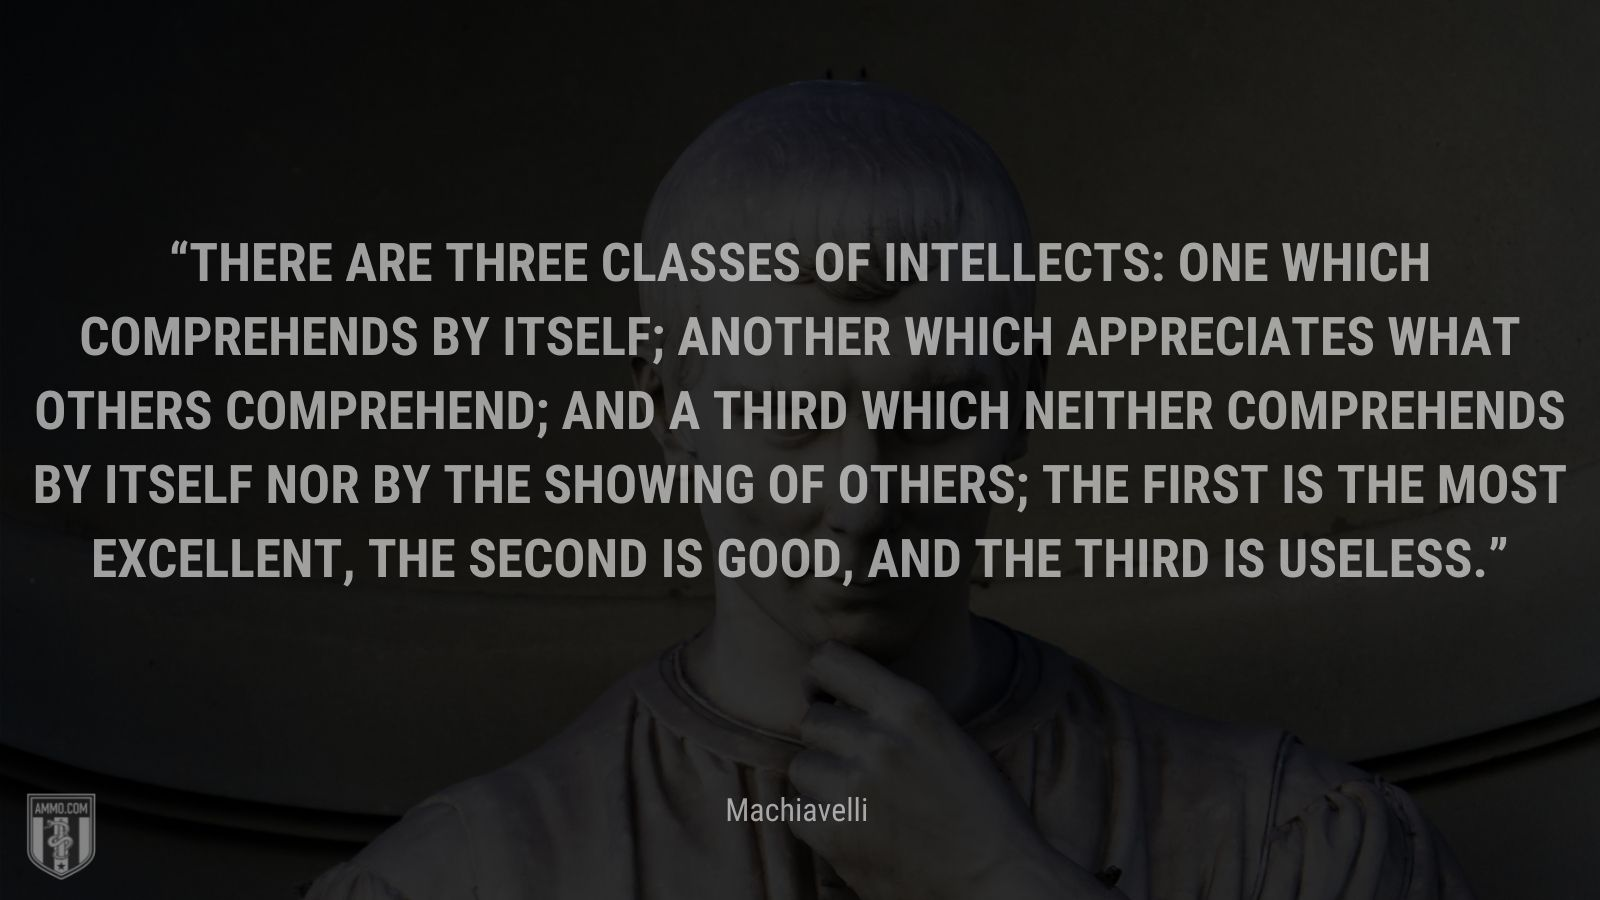 """""""There are three classes of intellects: one which comprehends by itself; another which appreciates what others comprehend; and a third which neither comprehends by itself nor by the showing of others; the first is the most excellent, the second is good, and the third is useless."""" - Machiavelli"""